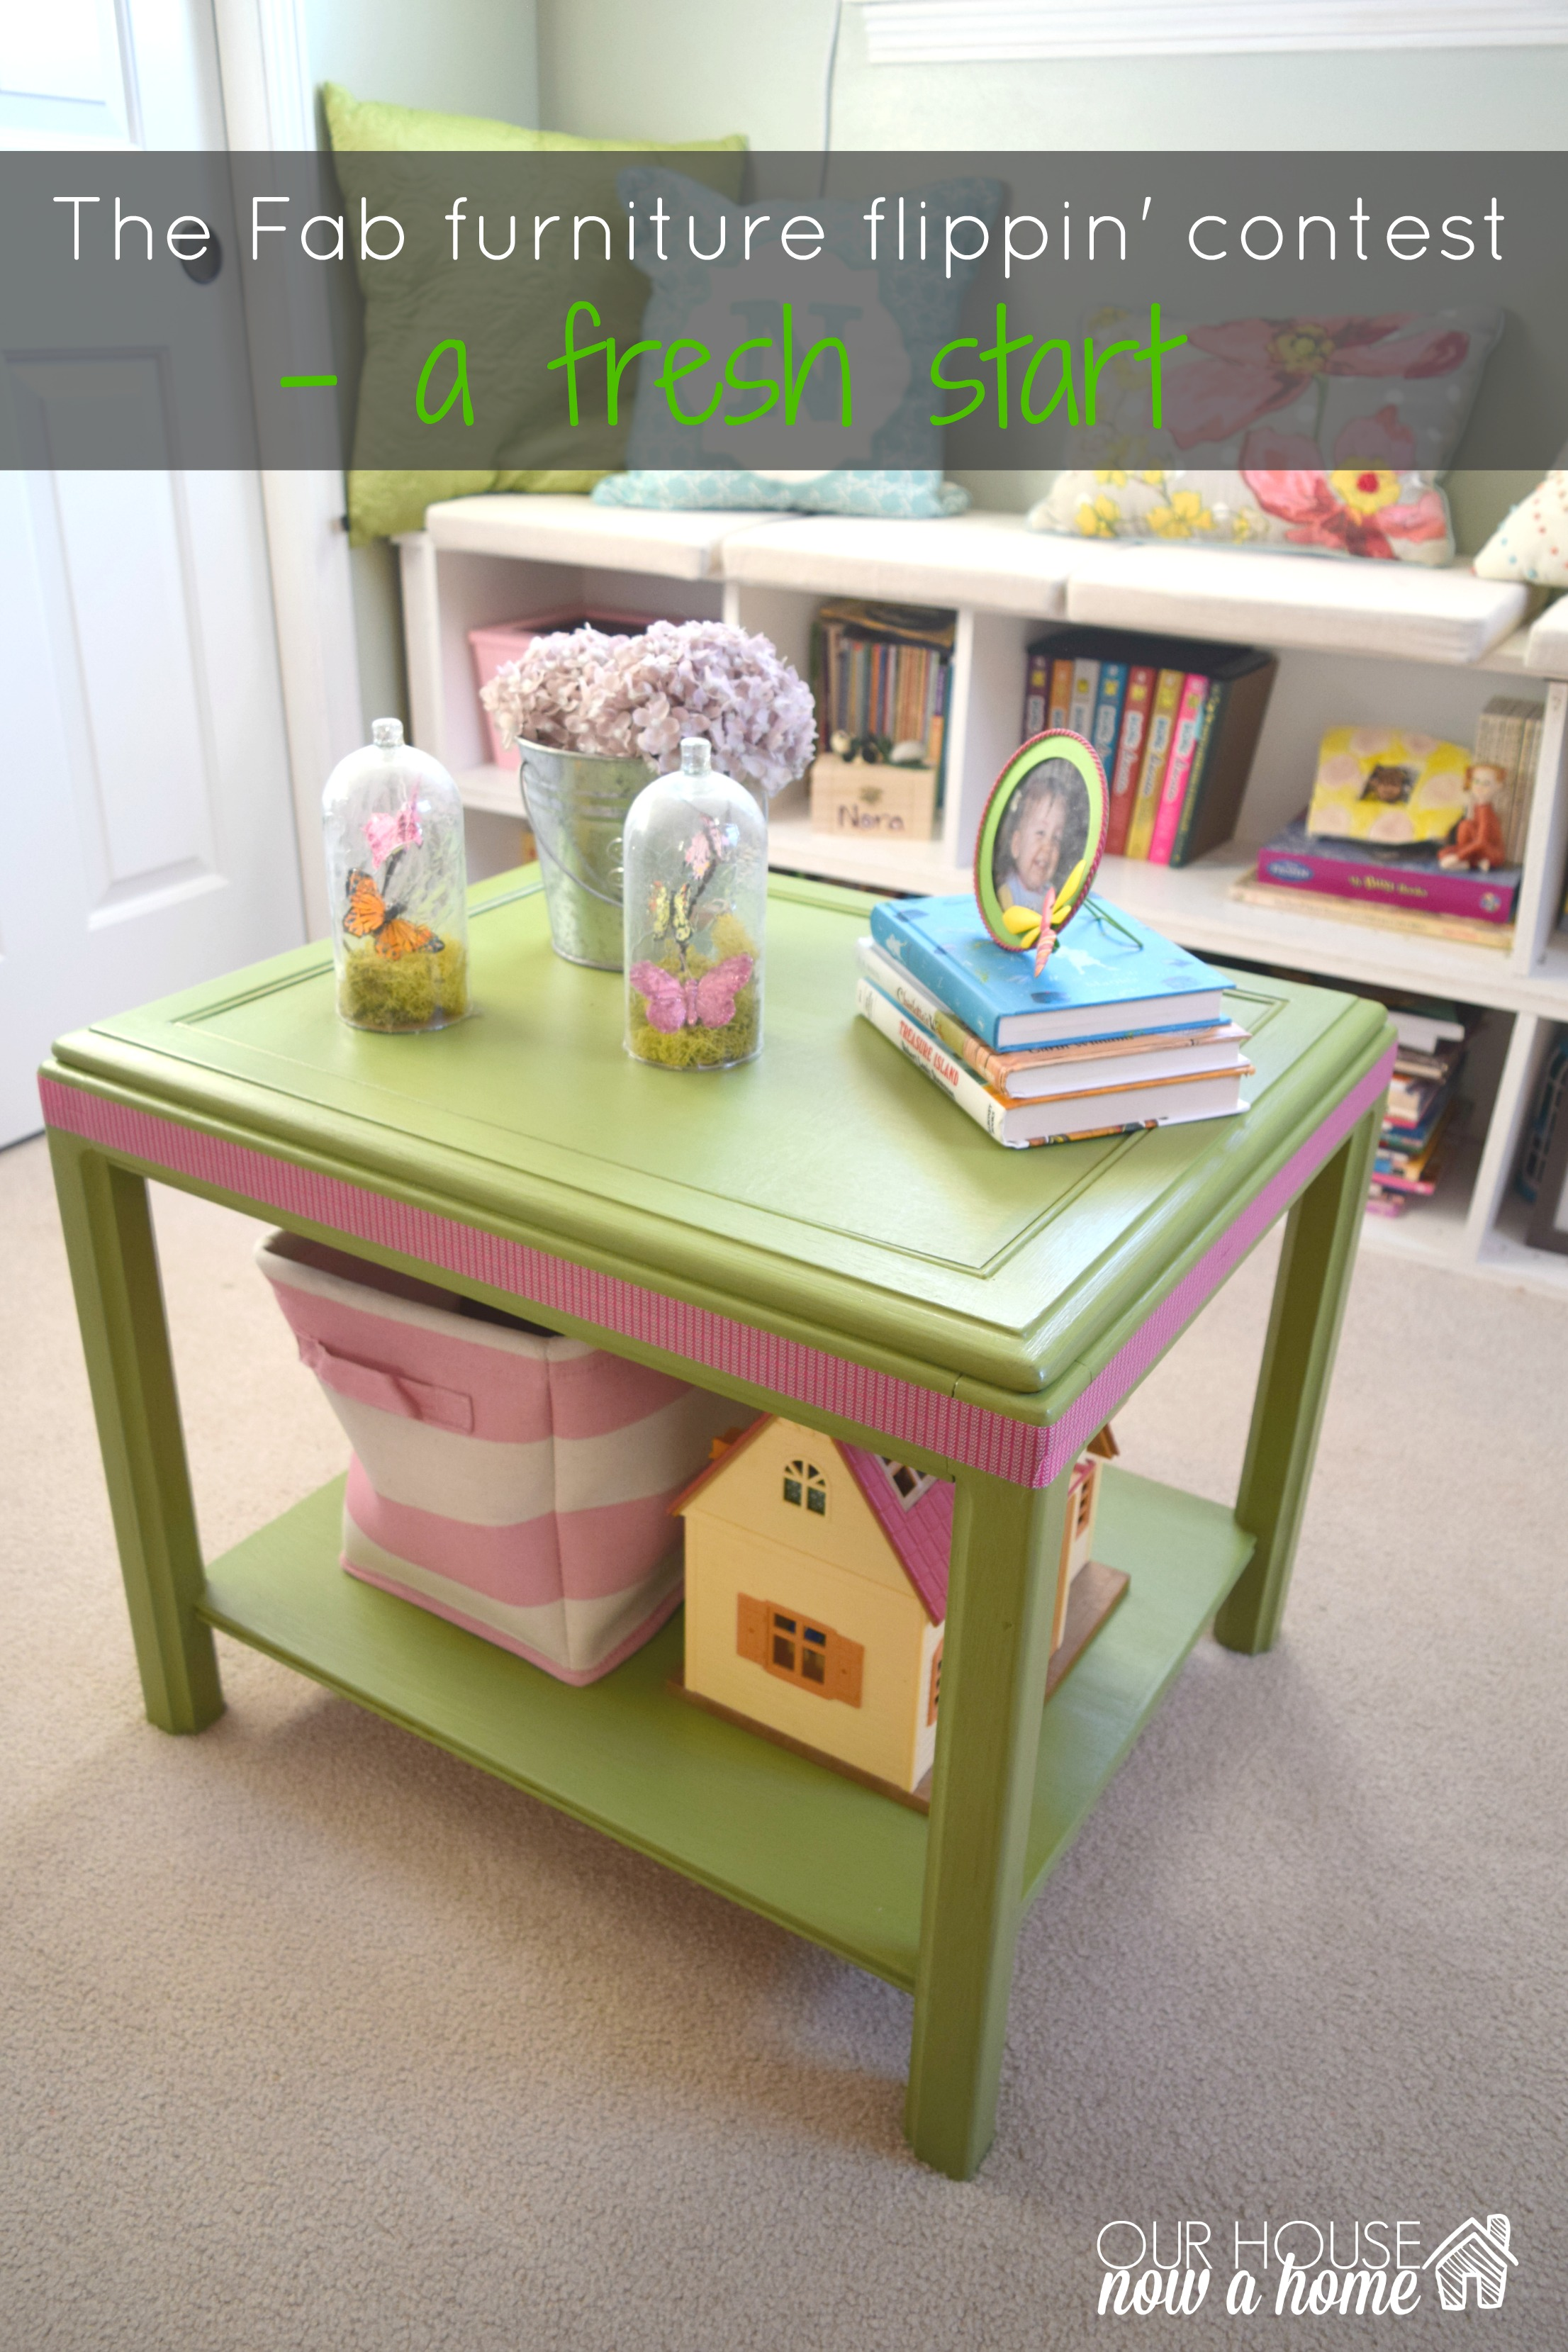 Fab furniture flippin contest side table turned into play table